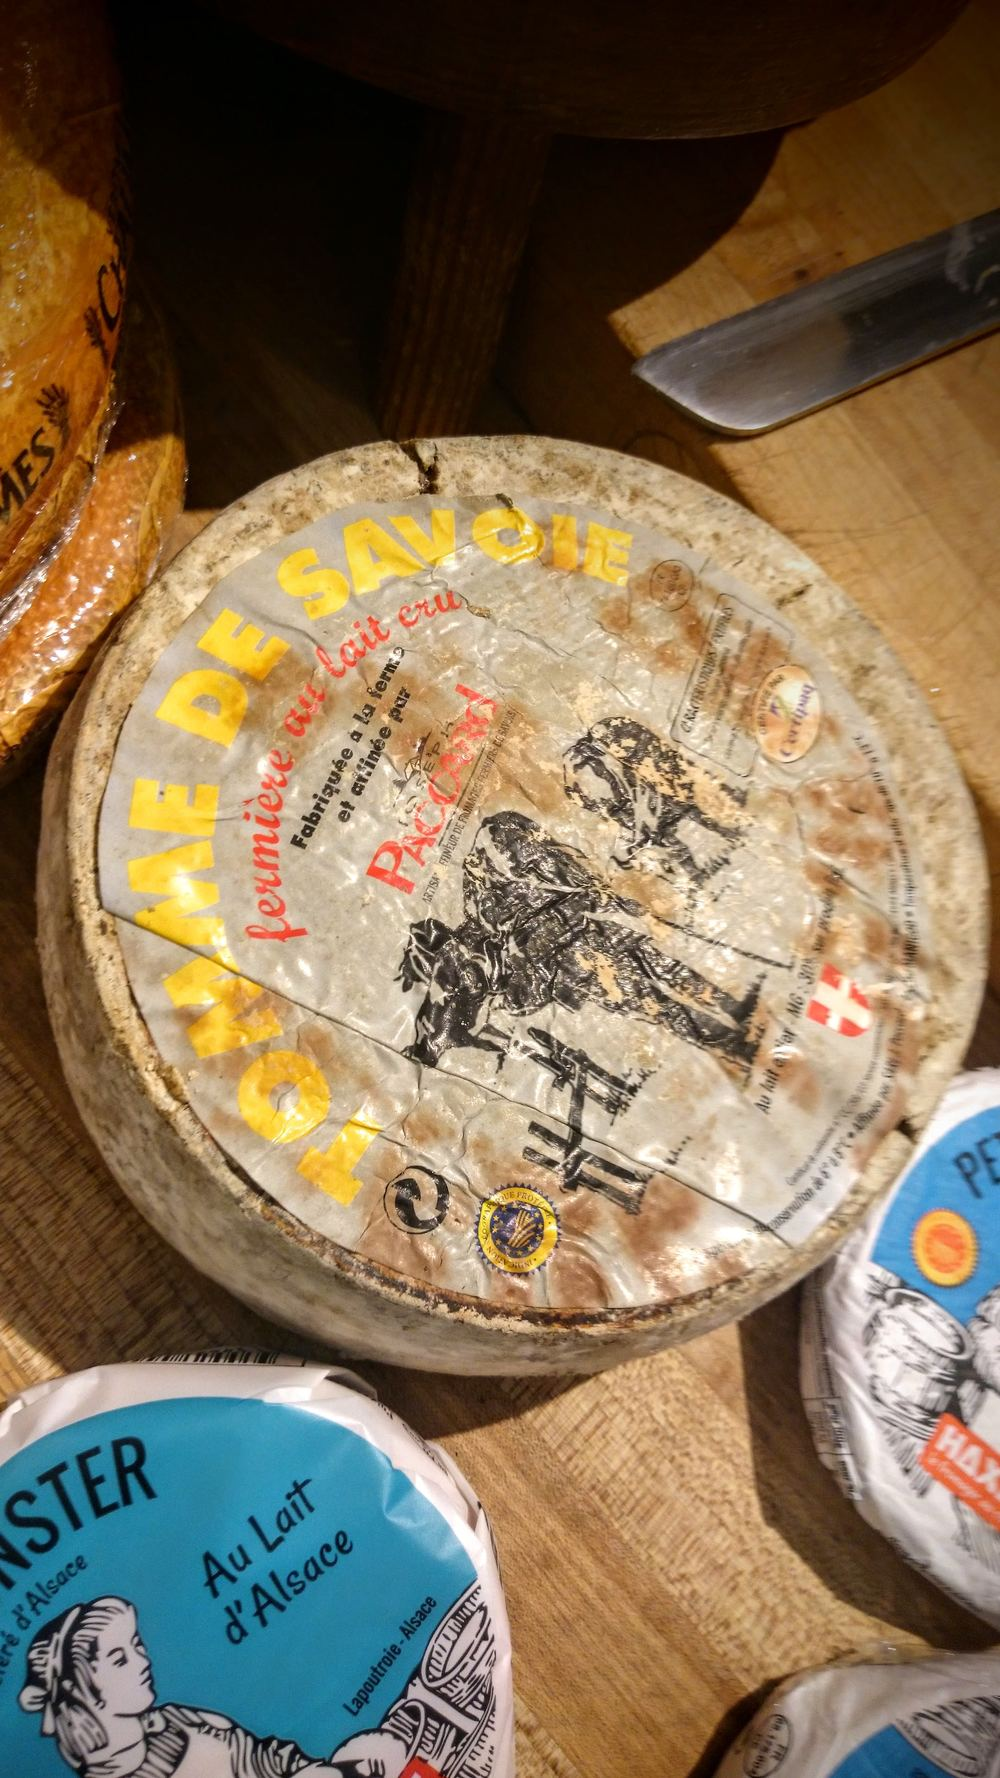 tomme-de-savoie-fermiere-cheese-store-beverly-hills.jpg